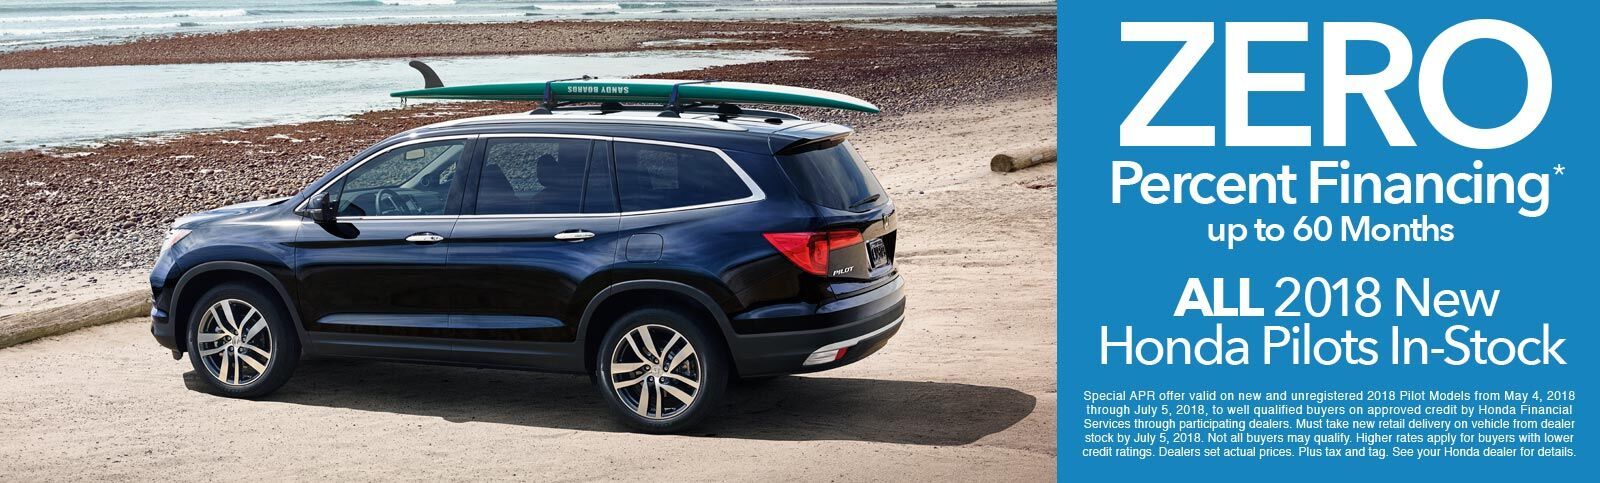 2018 Honda Pilots 0 Percent APR